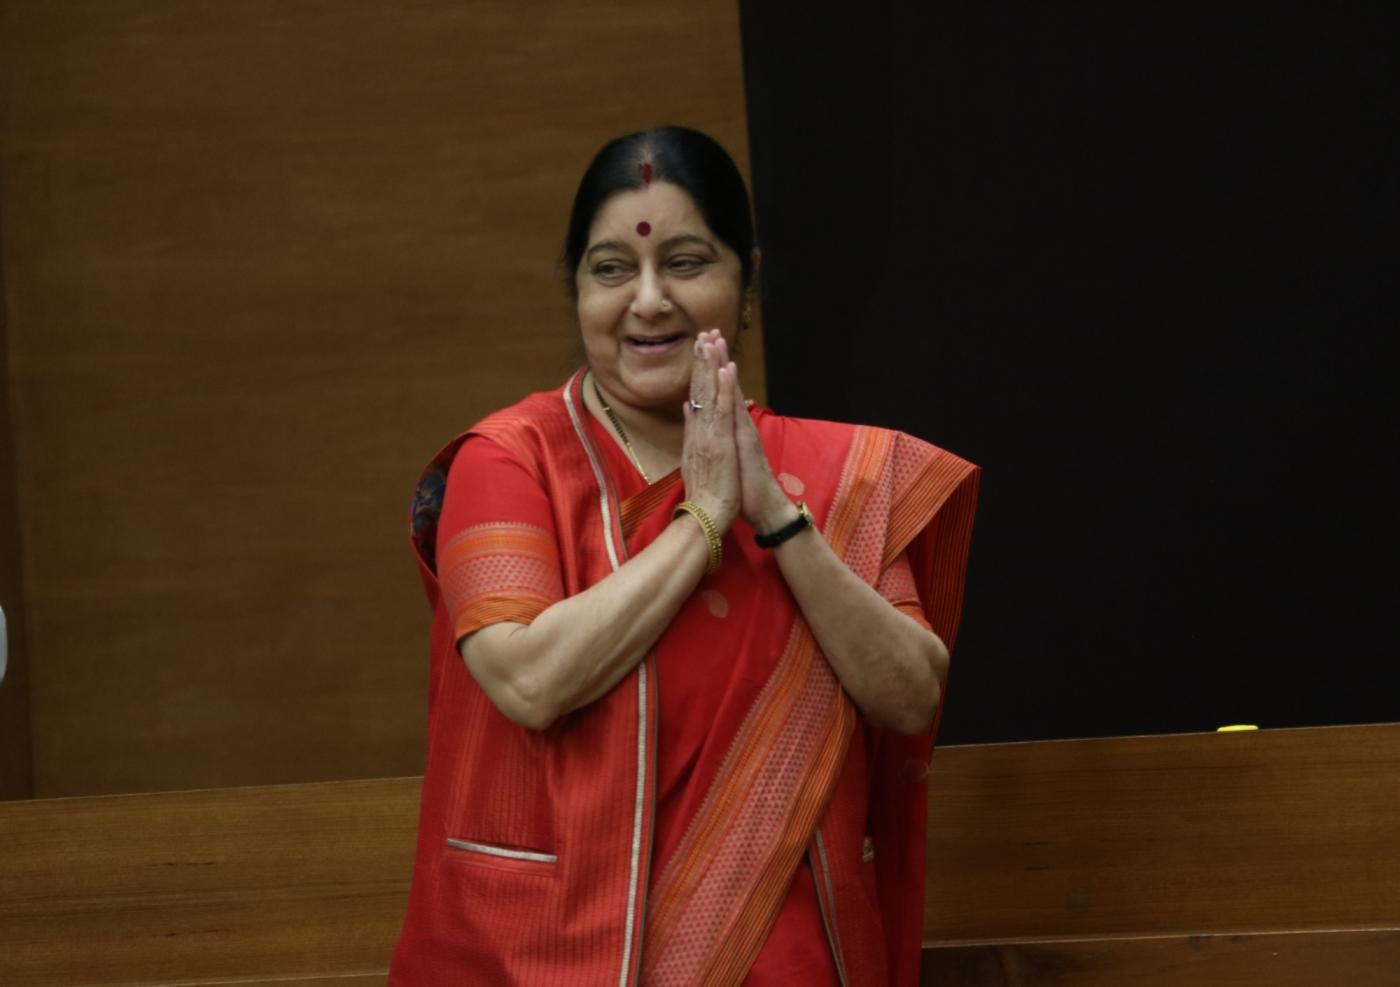 New Delhi: Union Minister and BJP leader Sushma Swaraj during a programme at party's headquarter, in New Delhi, on May 5, 2019. (Photo: IANS) by .